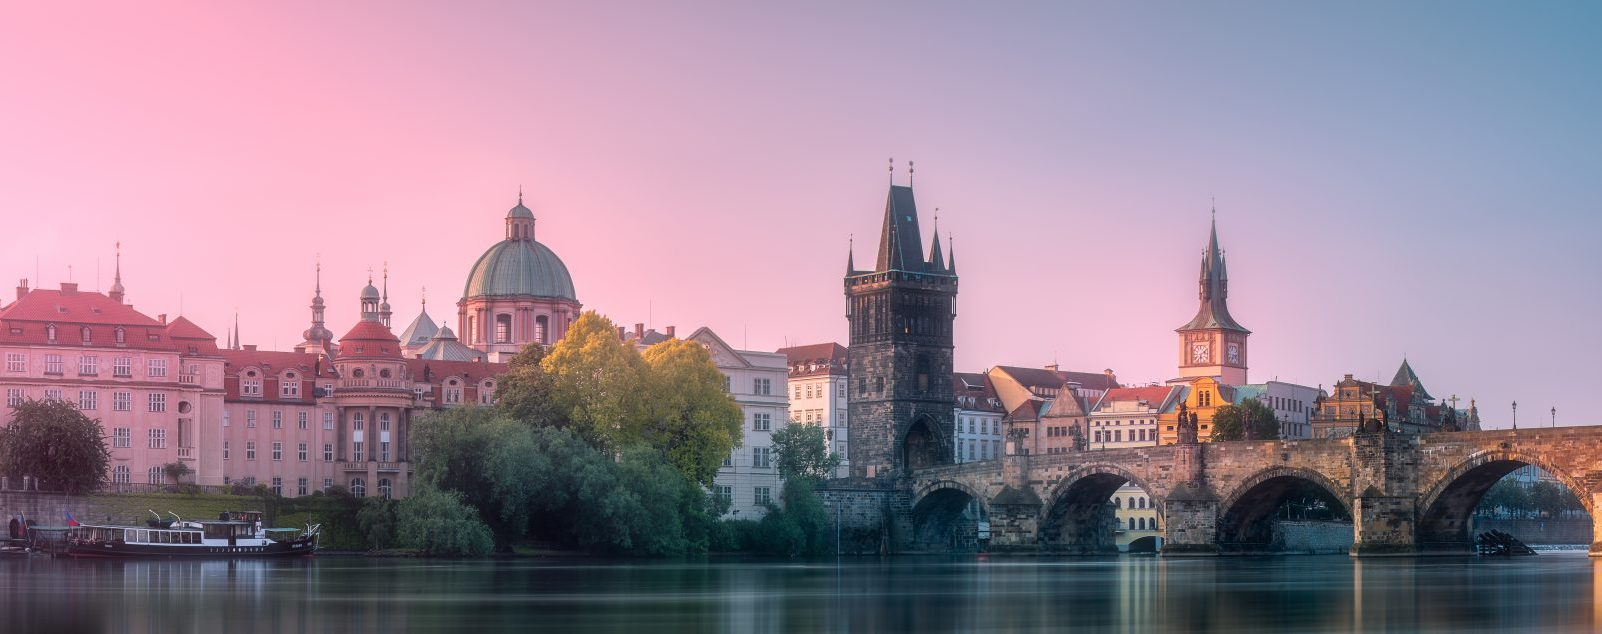 Morning view of Charles bridge and Prague cityscape with sunbeams, Czech Republic. Travel concept background.